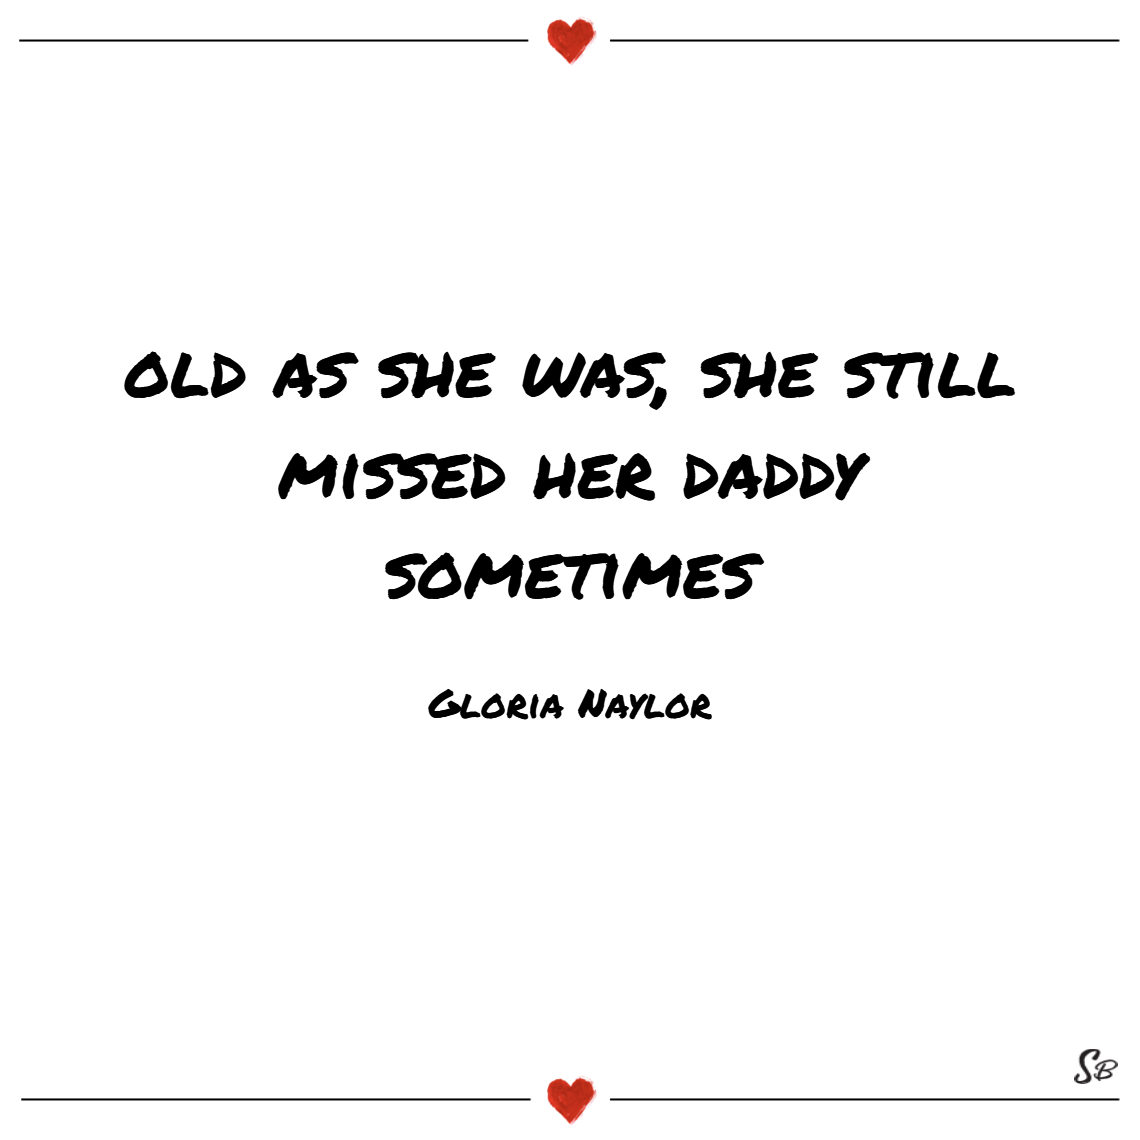 Old as she was, she still missed her daddy sometimes. – gloria naylor